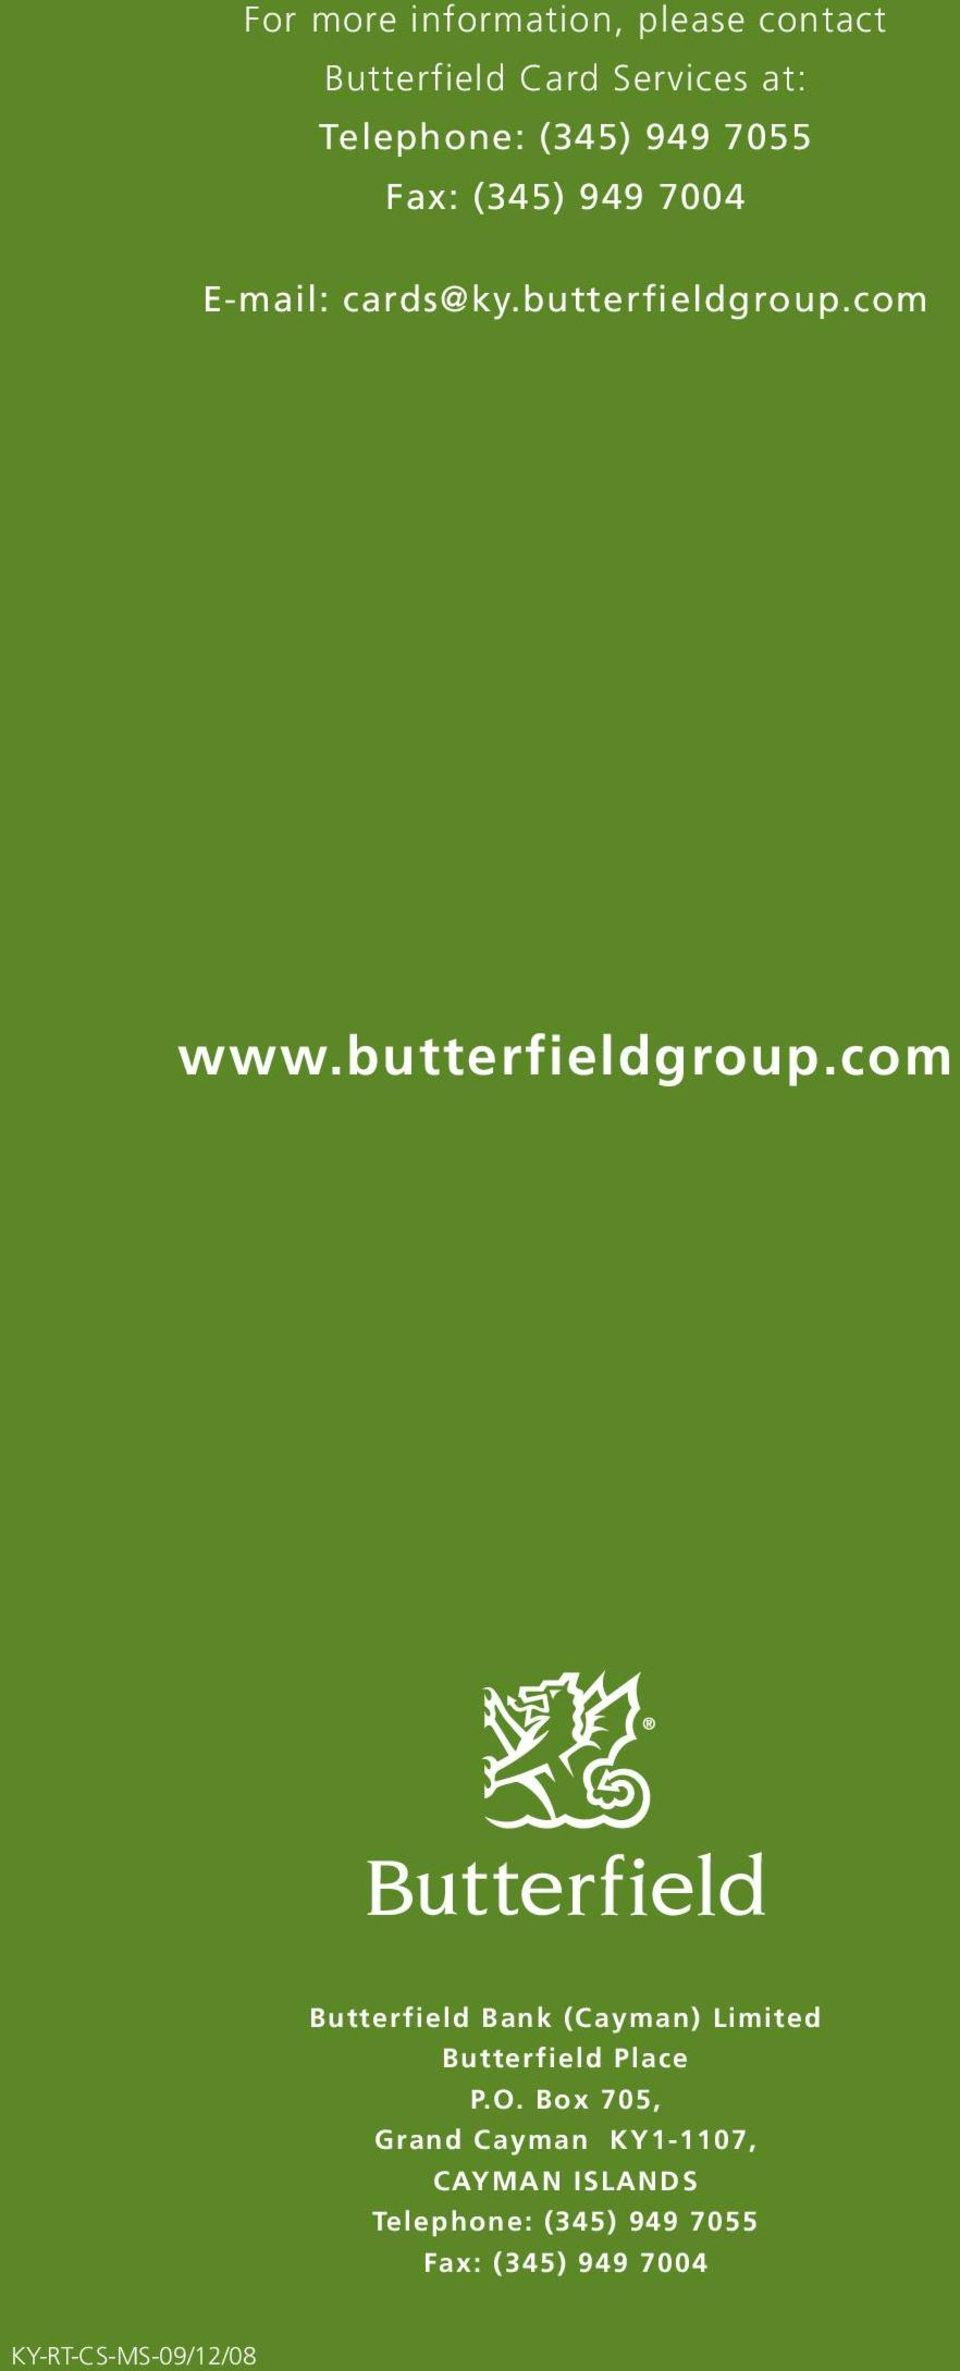 butterfieldgroup.com Butterfield Bank (Cayman) Limited Butterfield Place P.O.